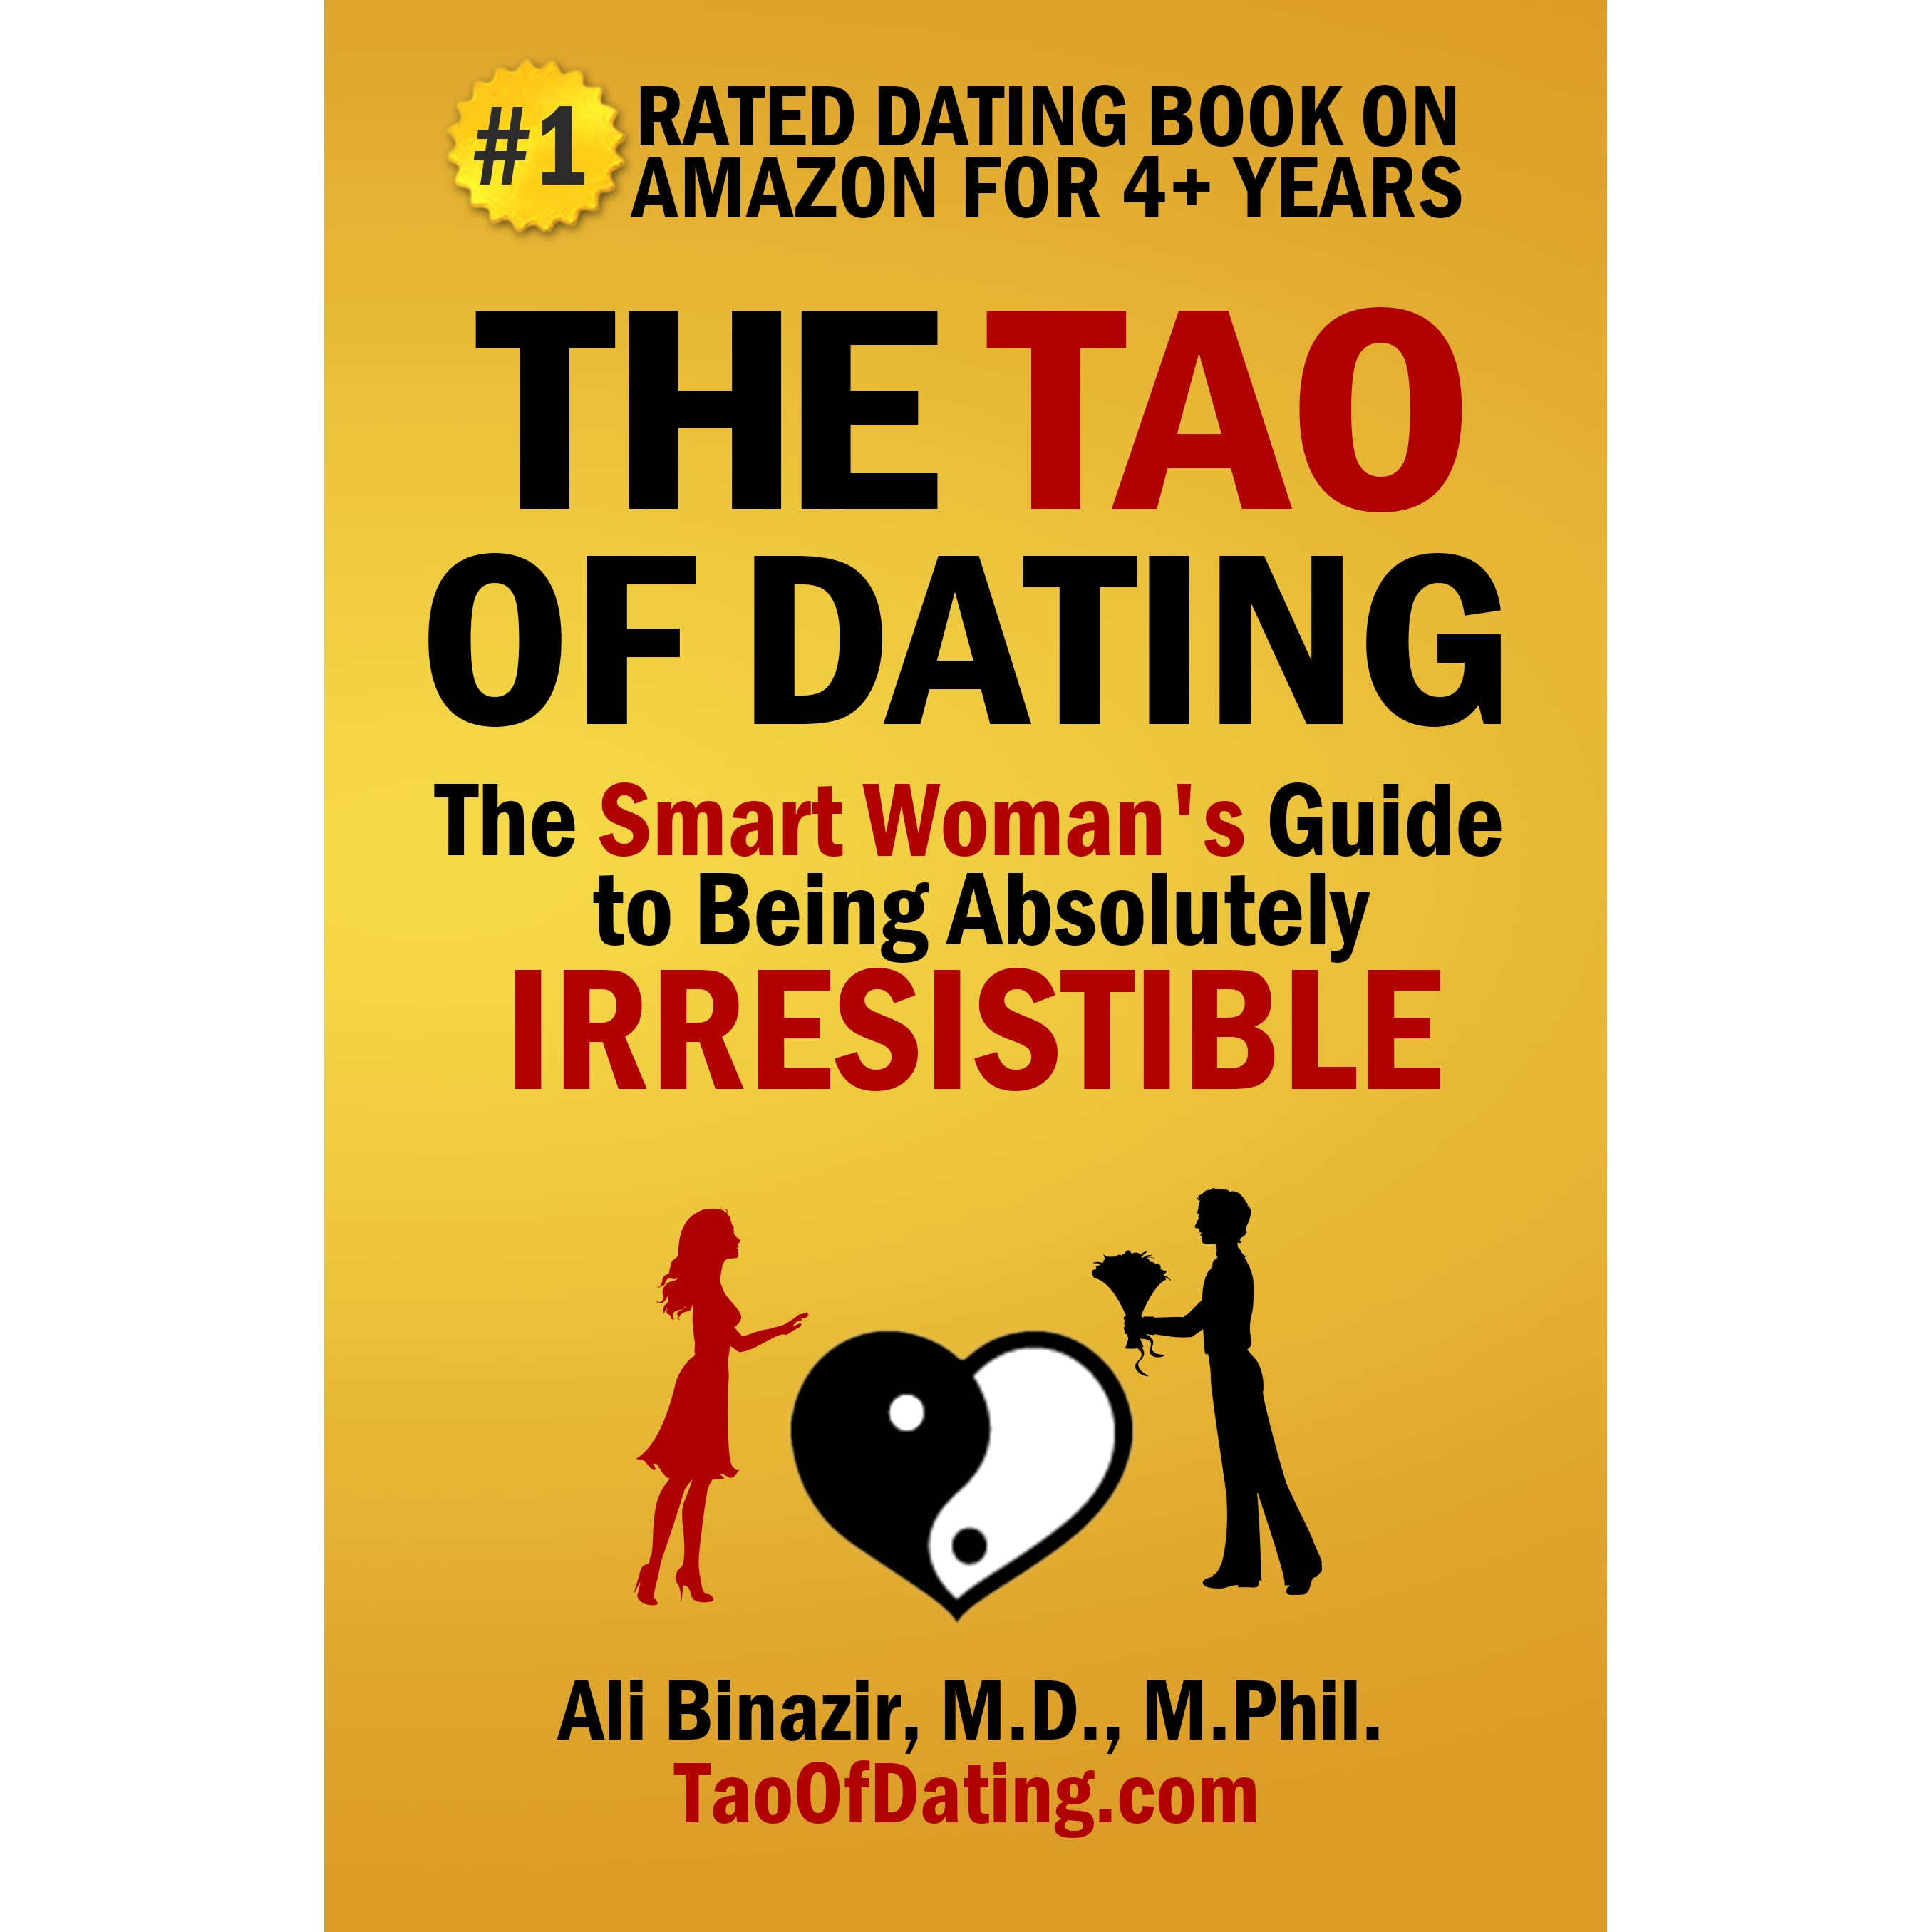 tao of dating the smart womans guide to being absolutely irresistible